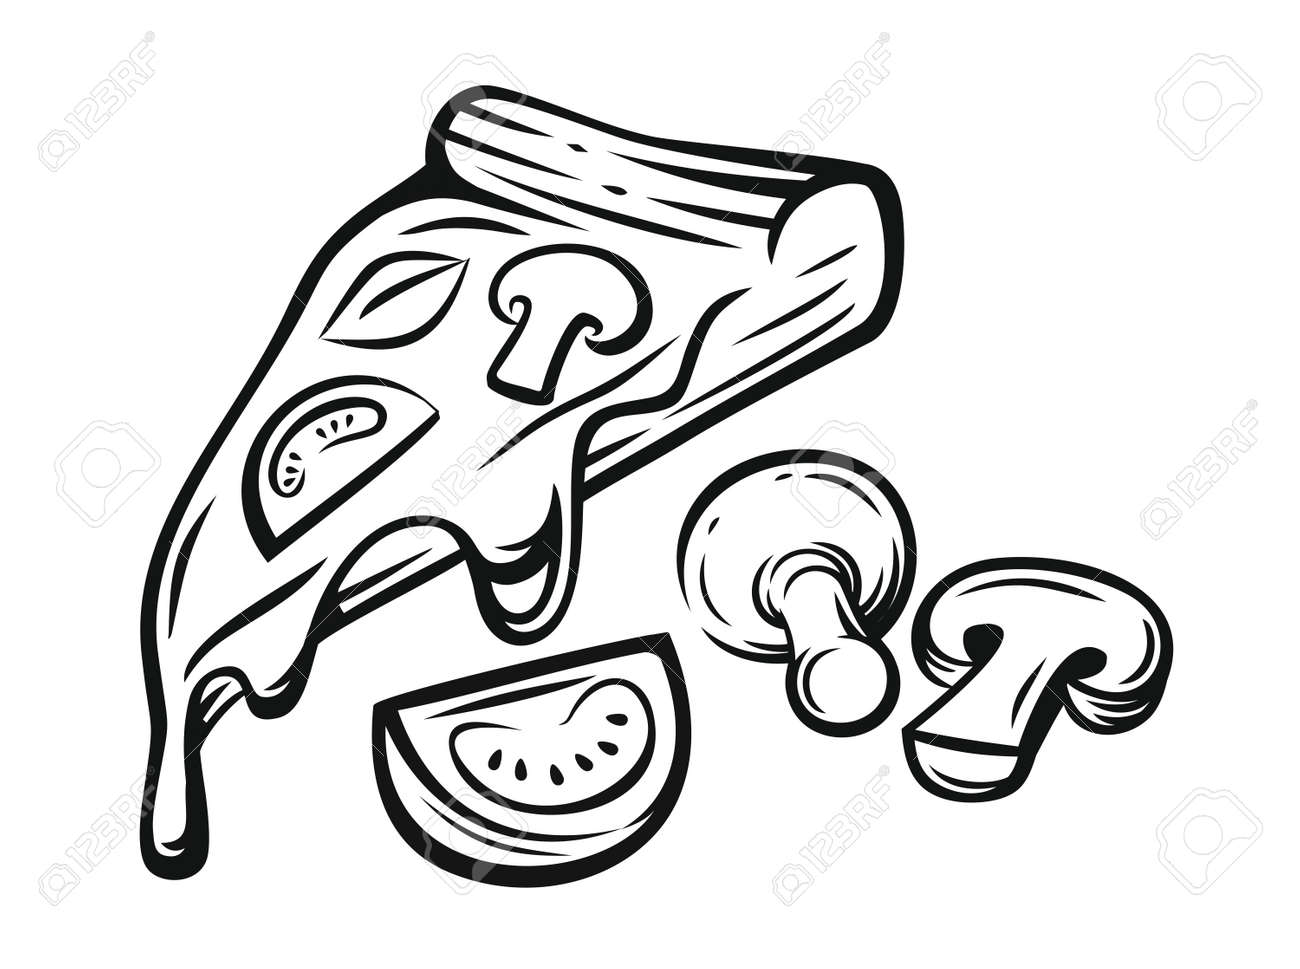 Pizza Png Clipart Library Library - Cheese Pizza Slice Png, Transparent Png  - vhv